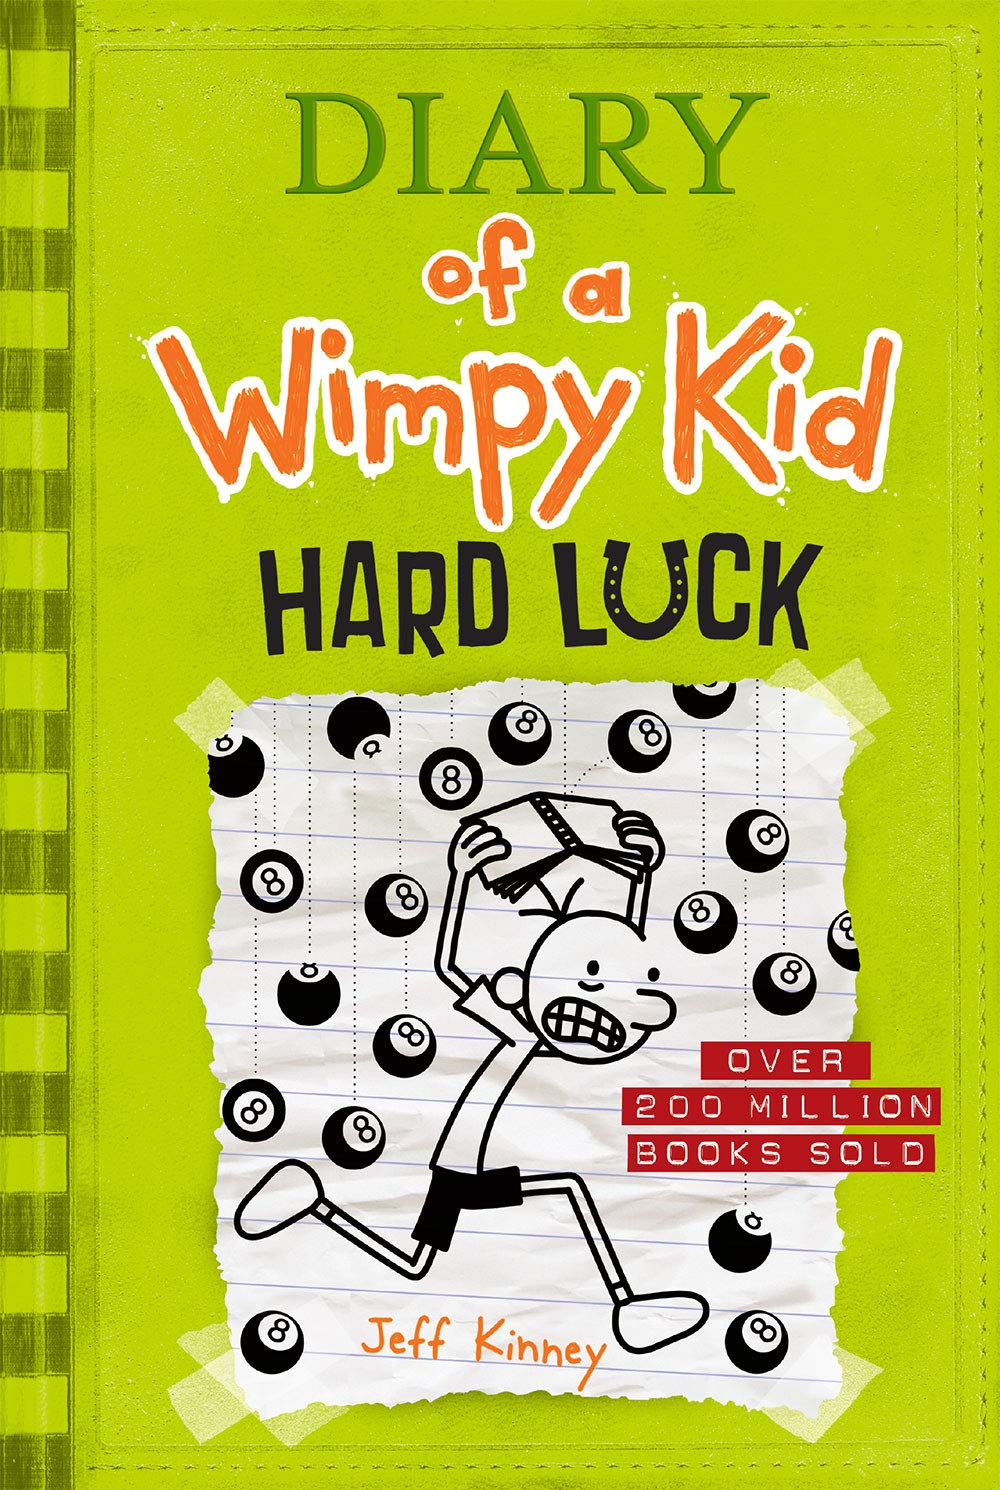 diary of a wimpy kid in order